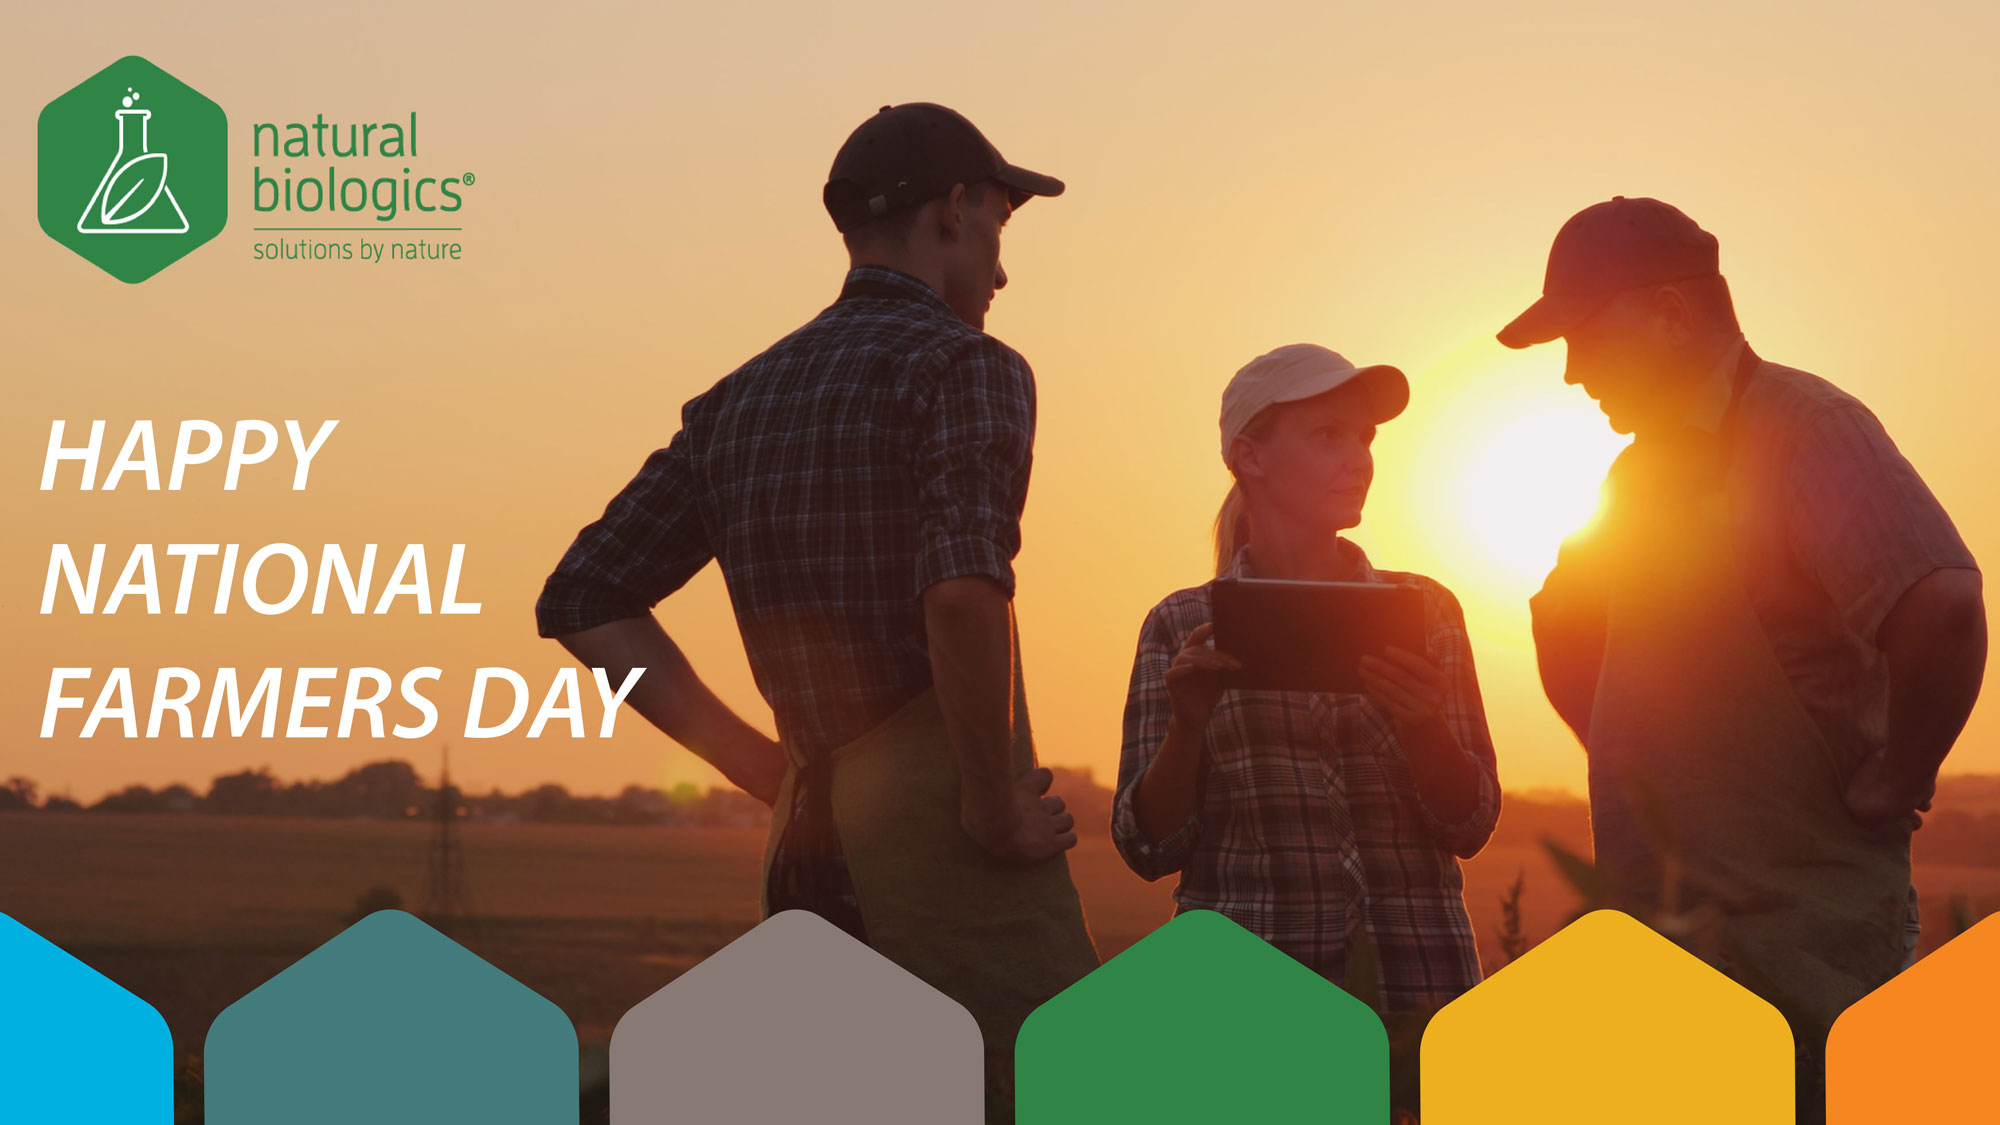 Happy National Farmers Day!